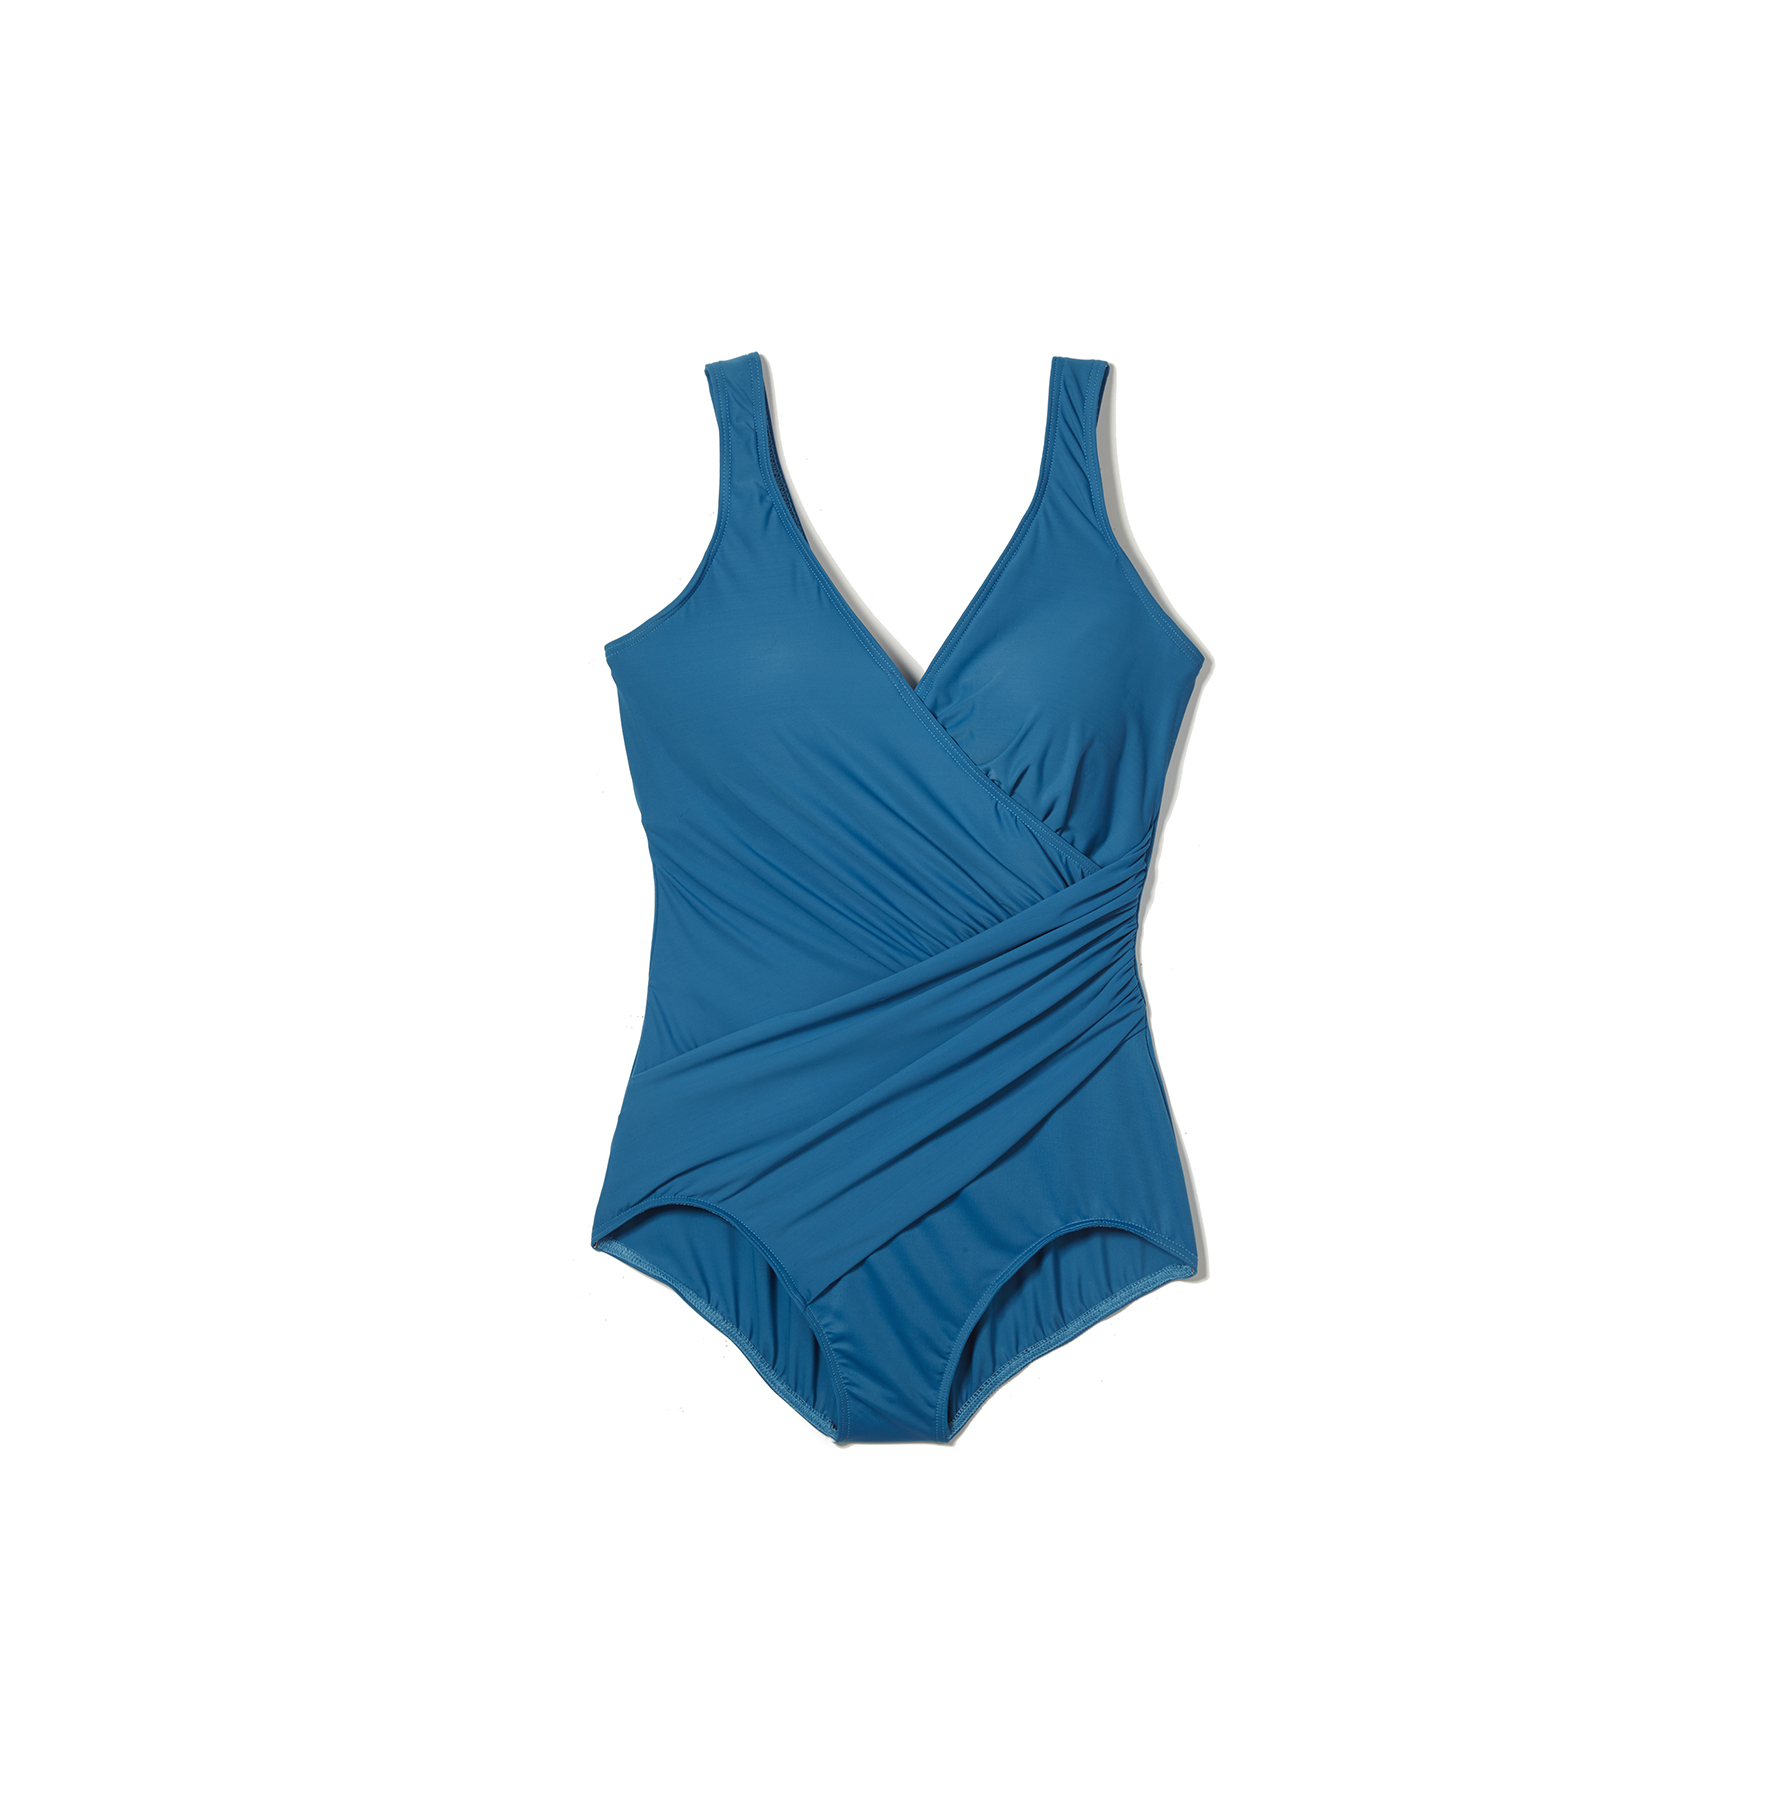 Miraclesuit Oceanus Soft Cup One Piece Swimsuit